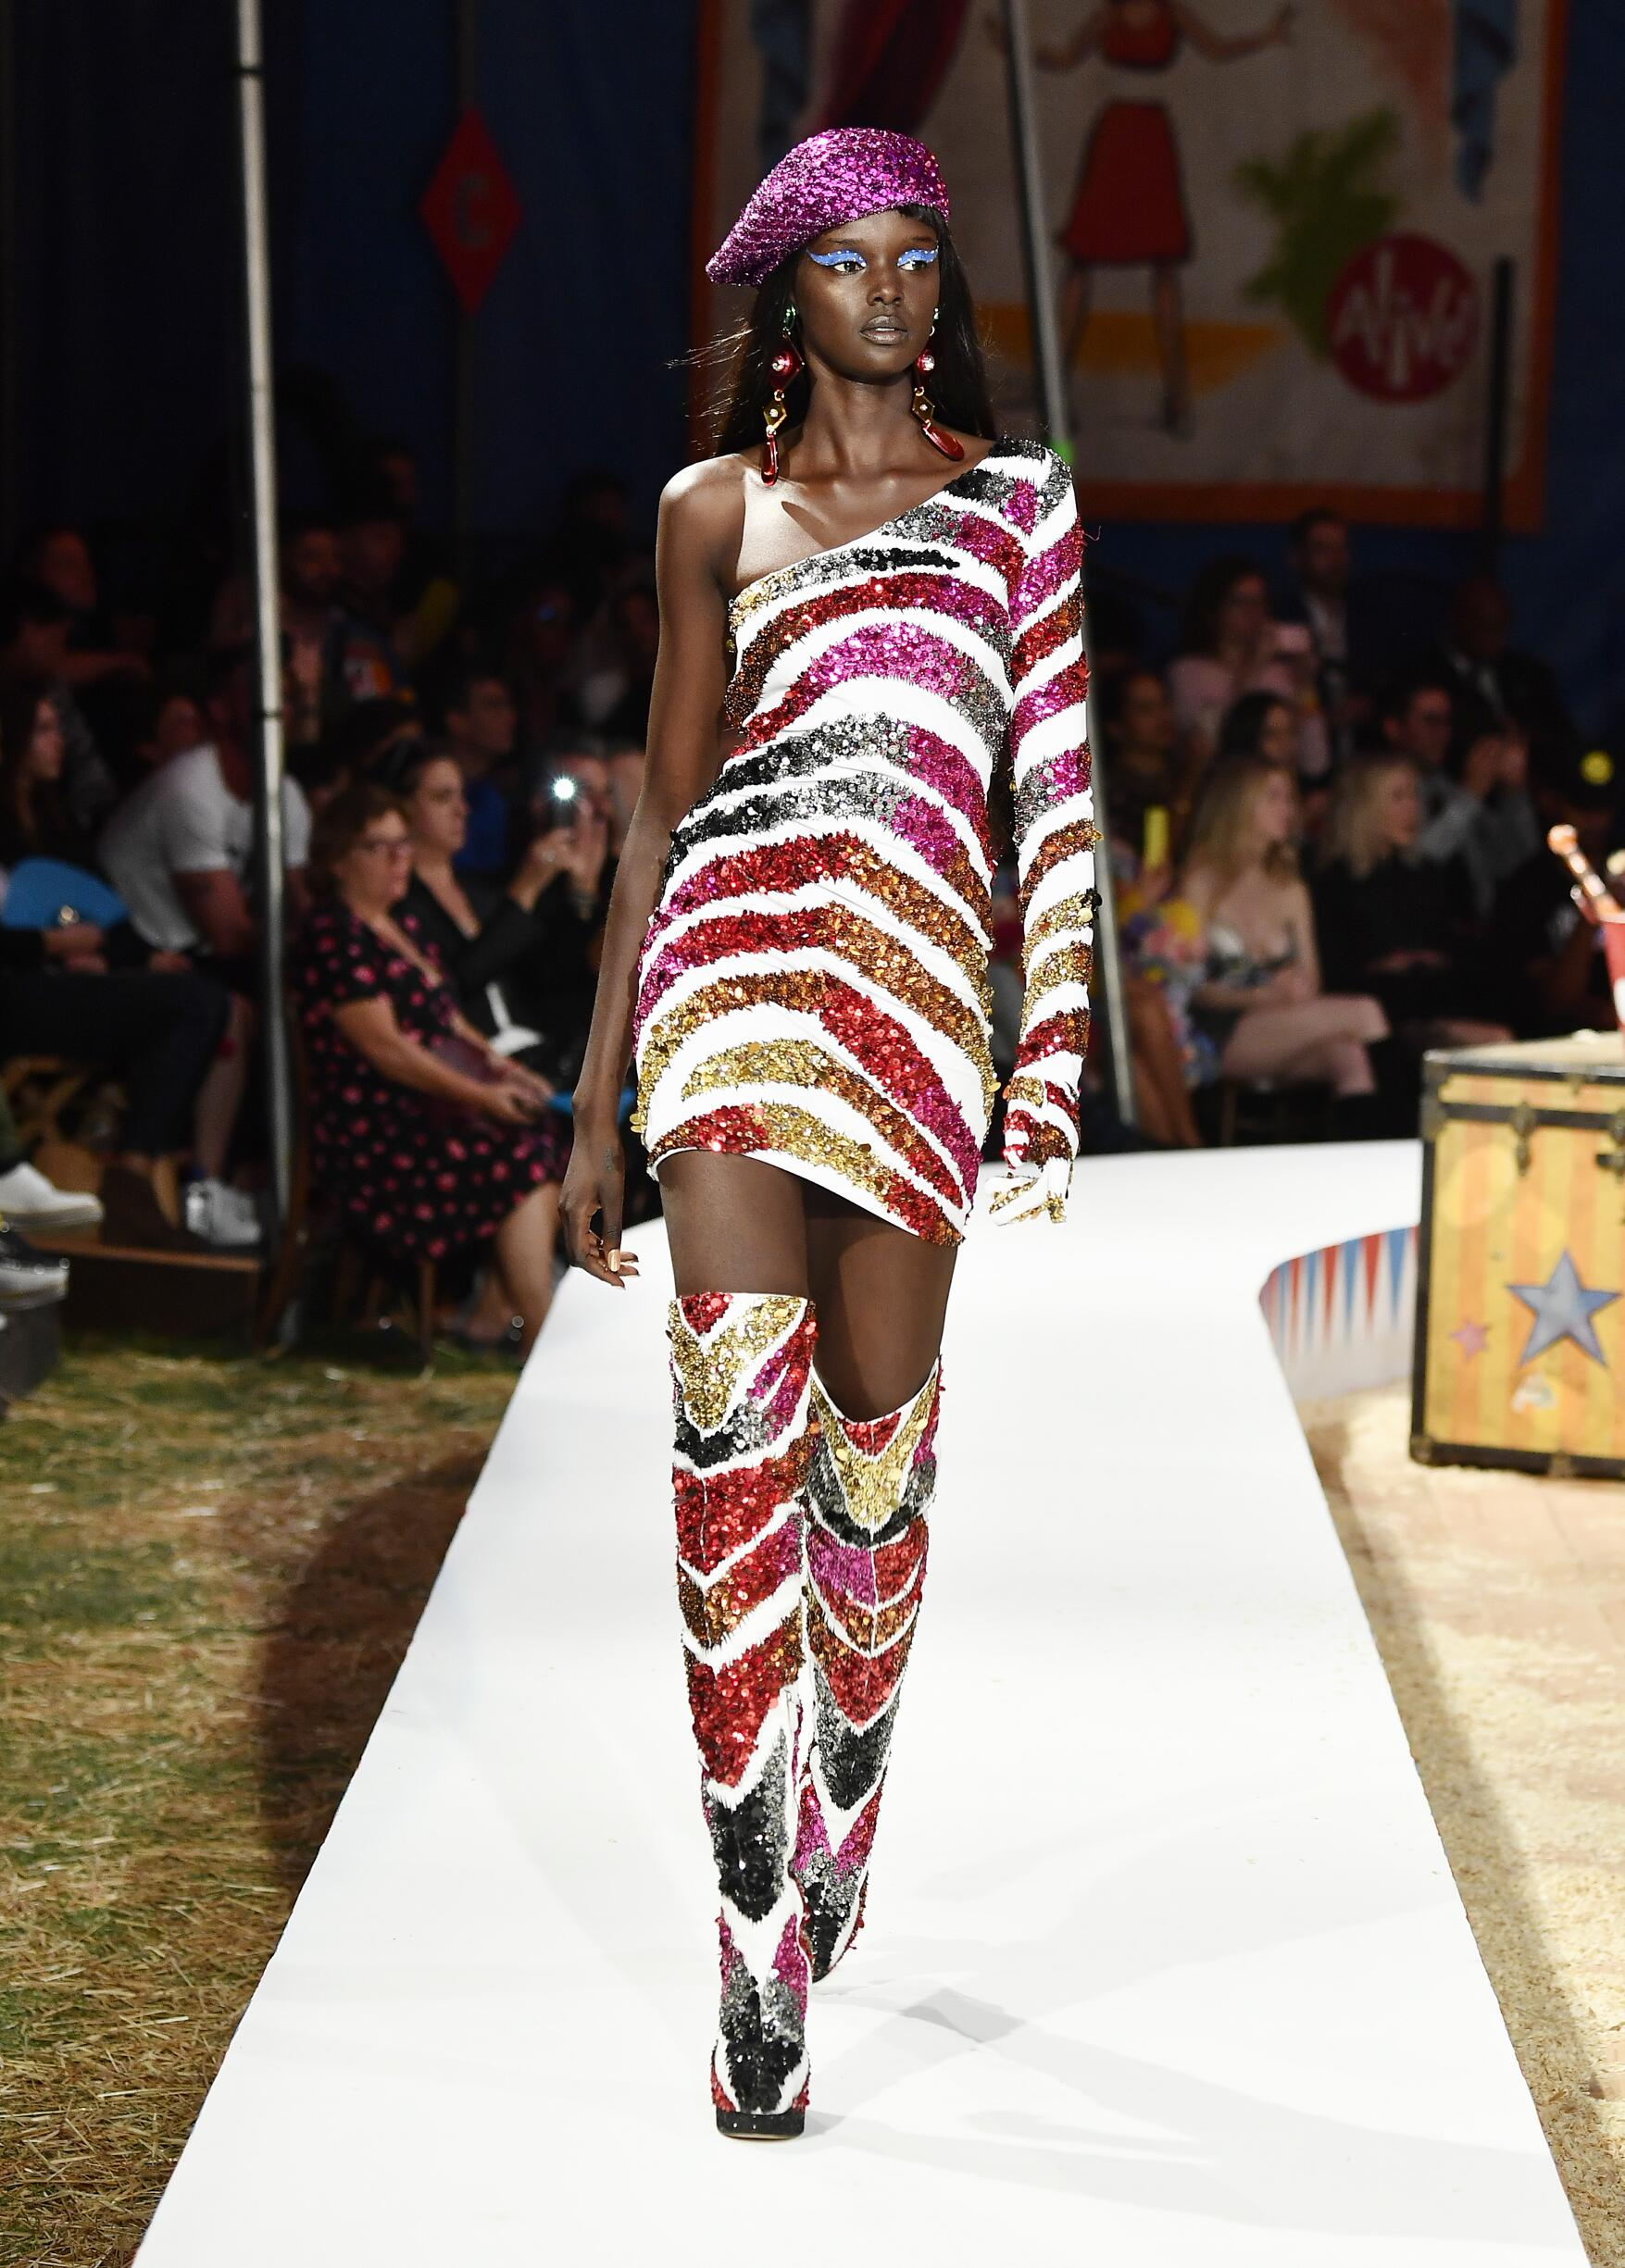 Moschino Spring Summer 2019 Menswear and Women's Resort Collection Look 50 Los Angeles